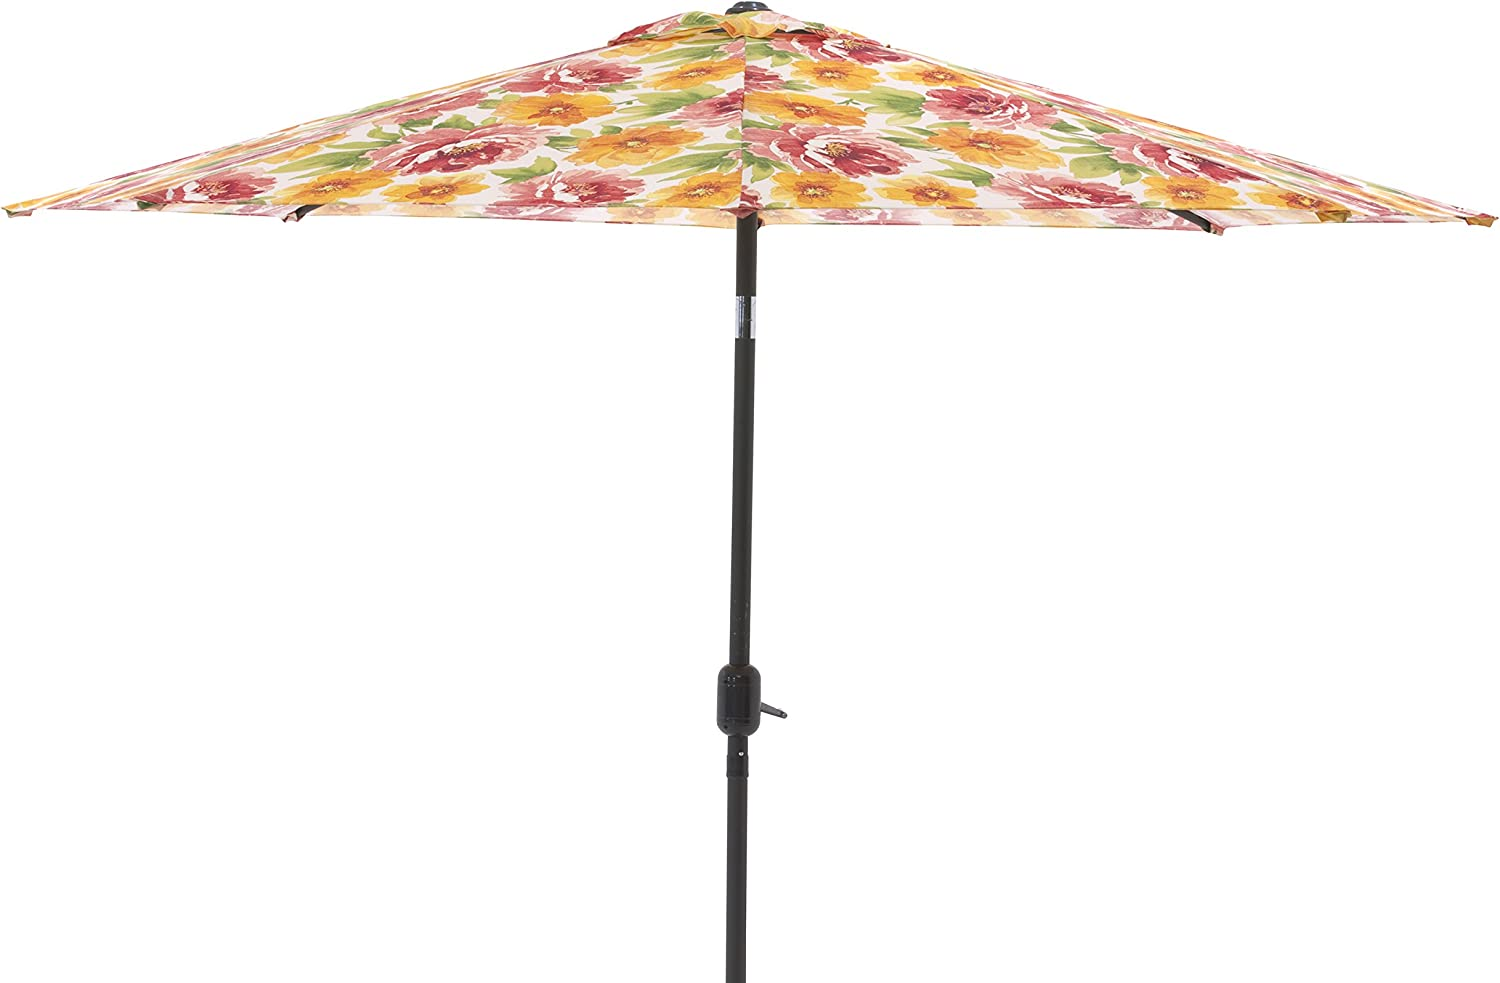 Pillow Perfect Primro Orange 9-foot Patio Market Umbrella